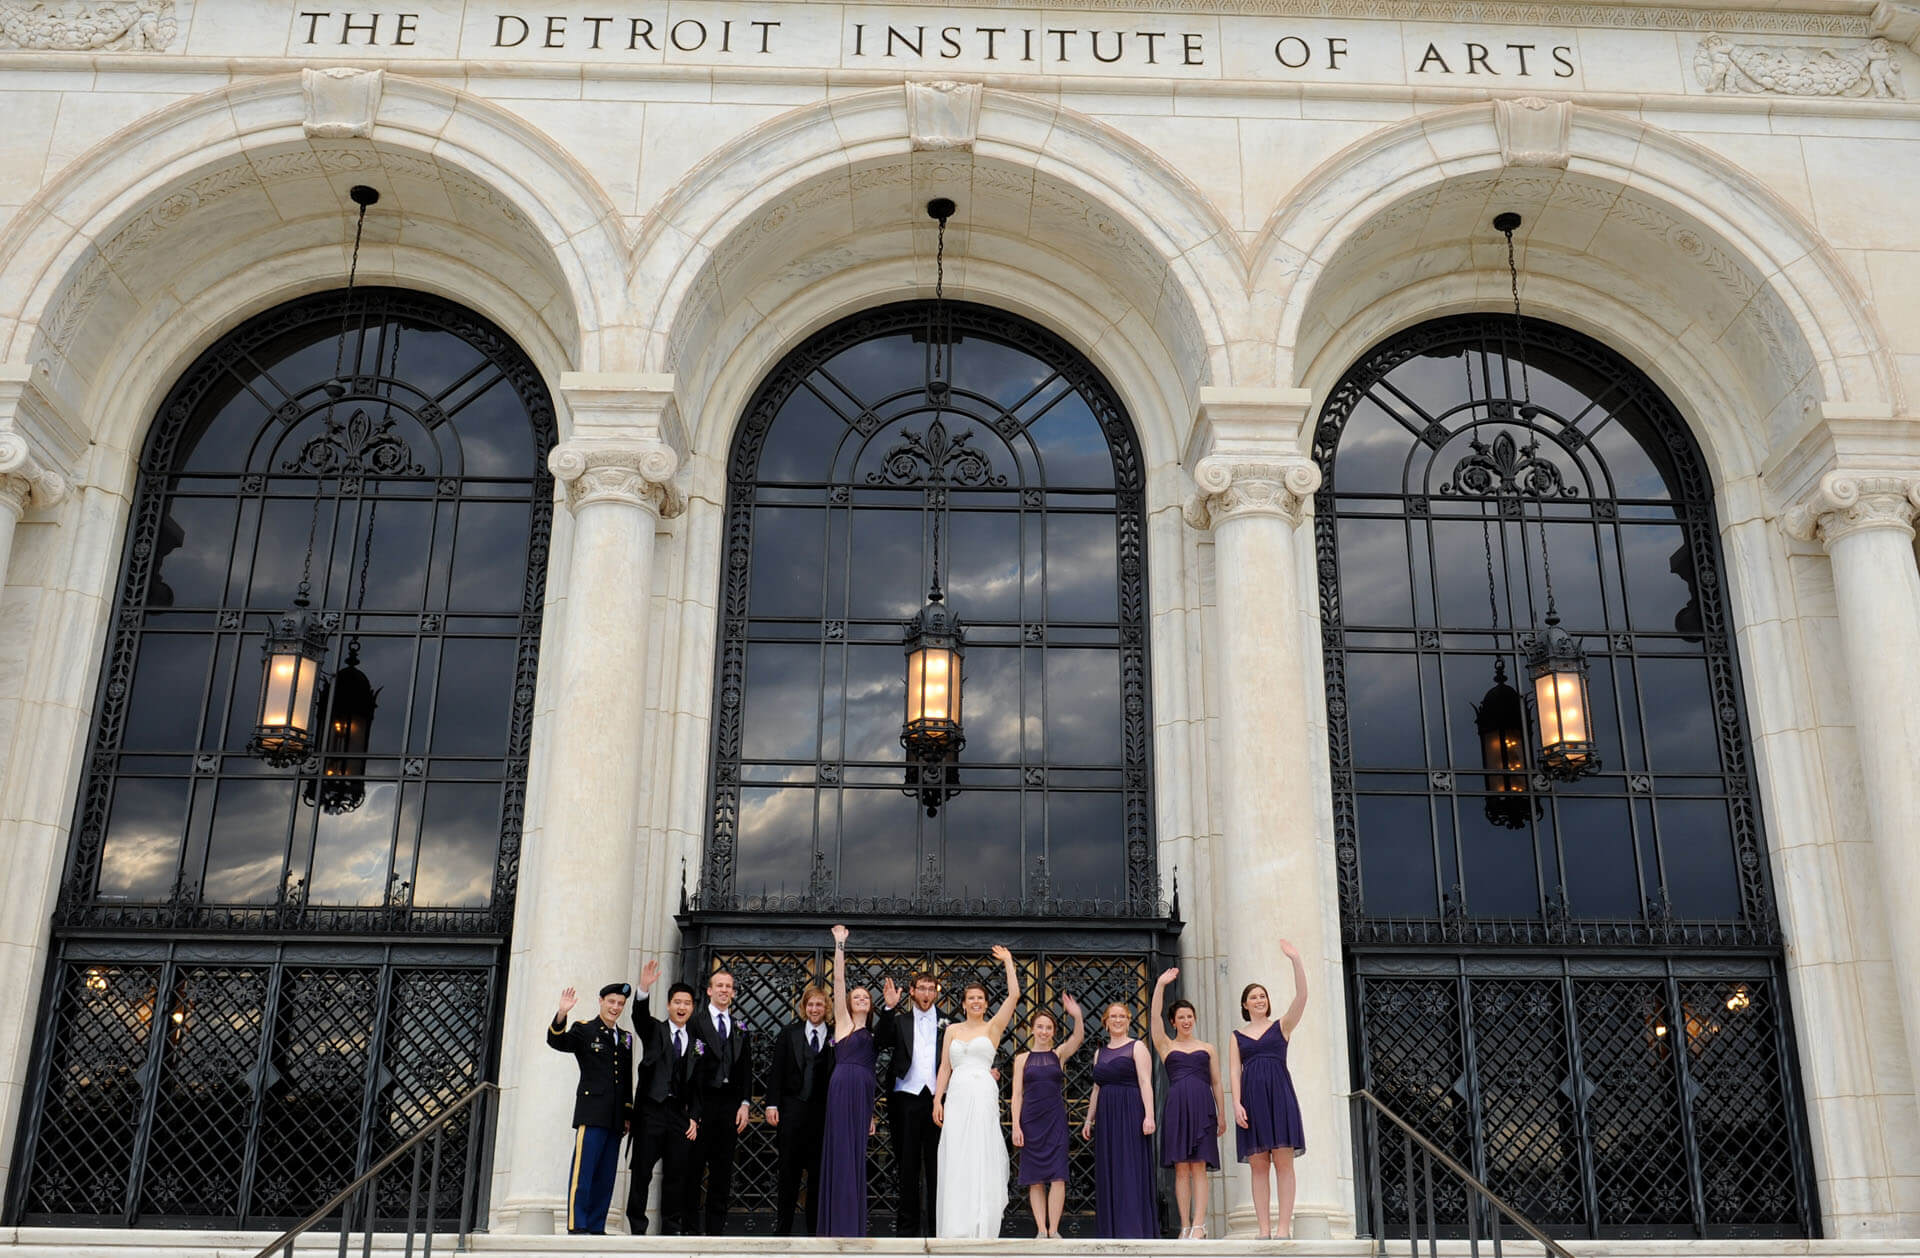 Epic Wedding portrait showing the bridal party standing on the steps of the DIA just as a car goes by and honks at them in Detroit, Michigan.